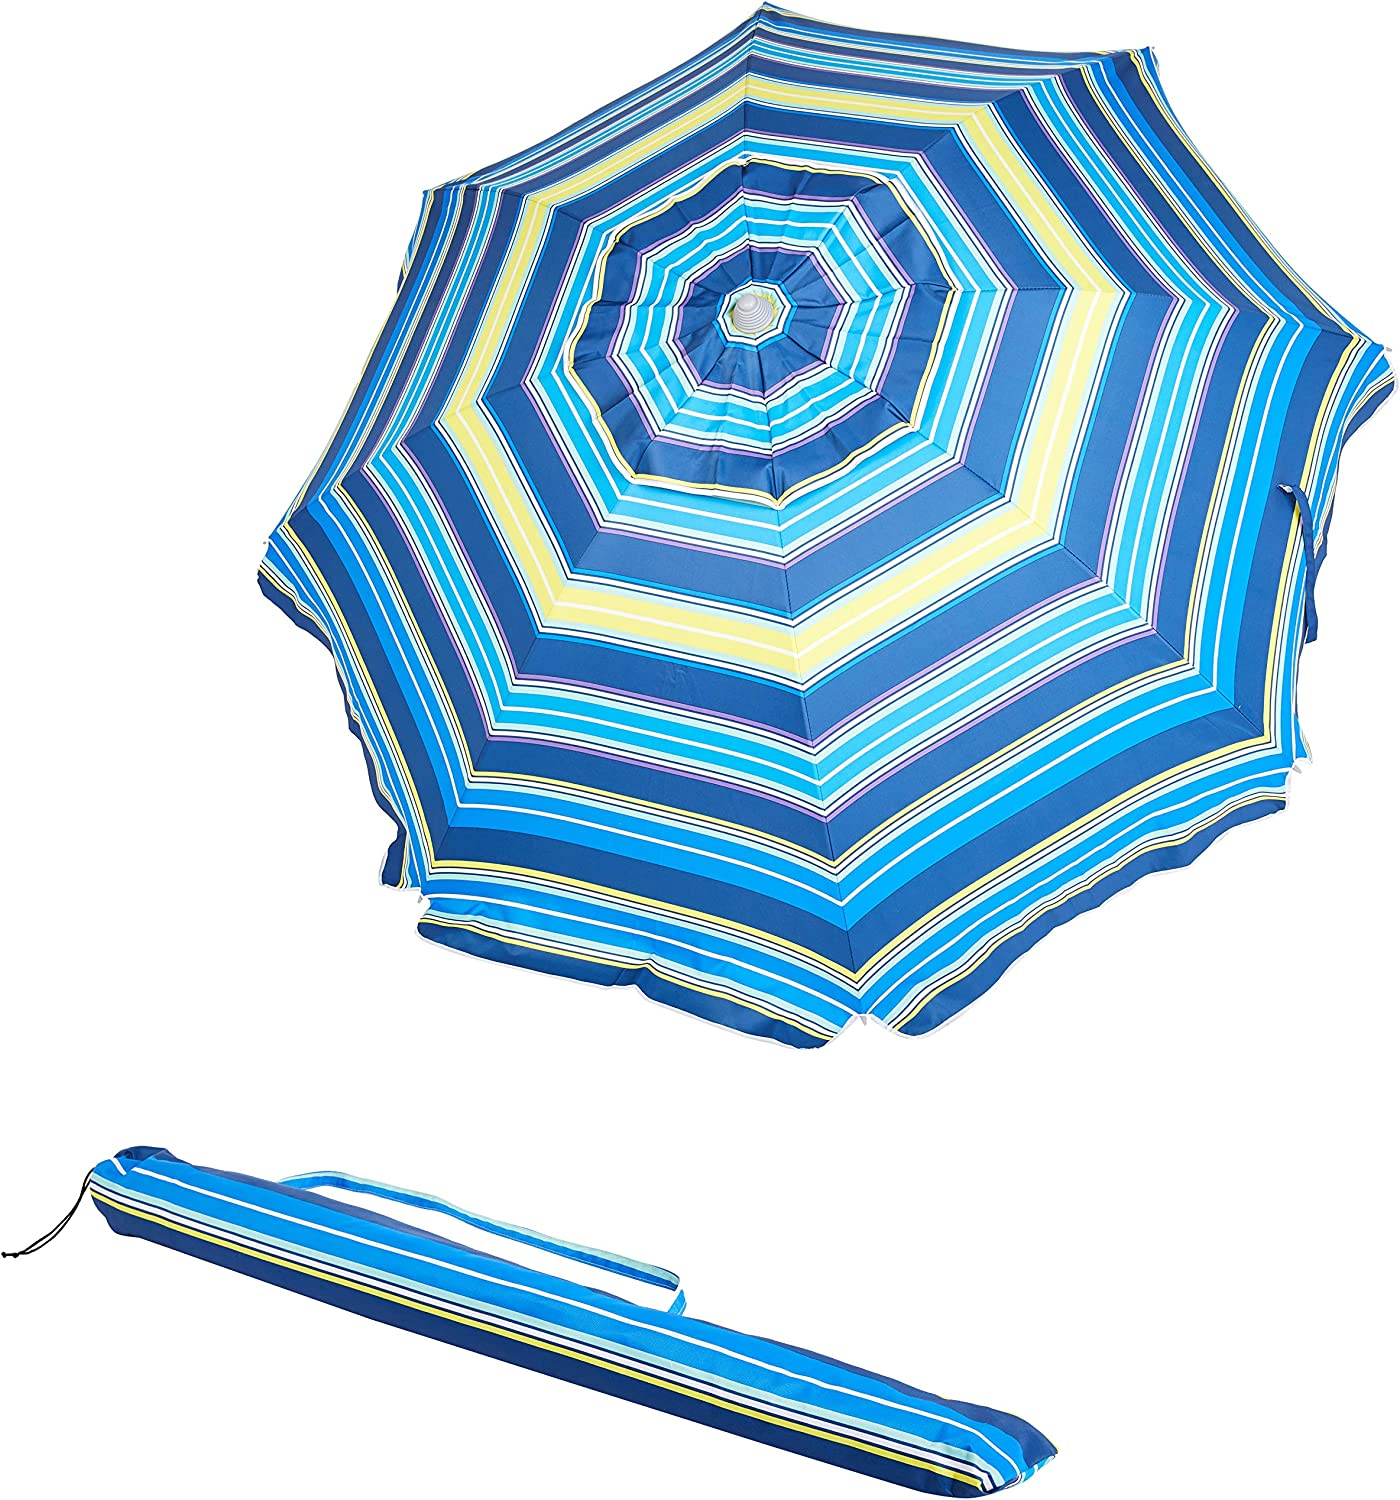 Amazon Basics Beach Umbrella - Blue/Yellow Striped